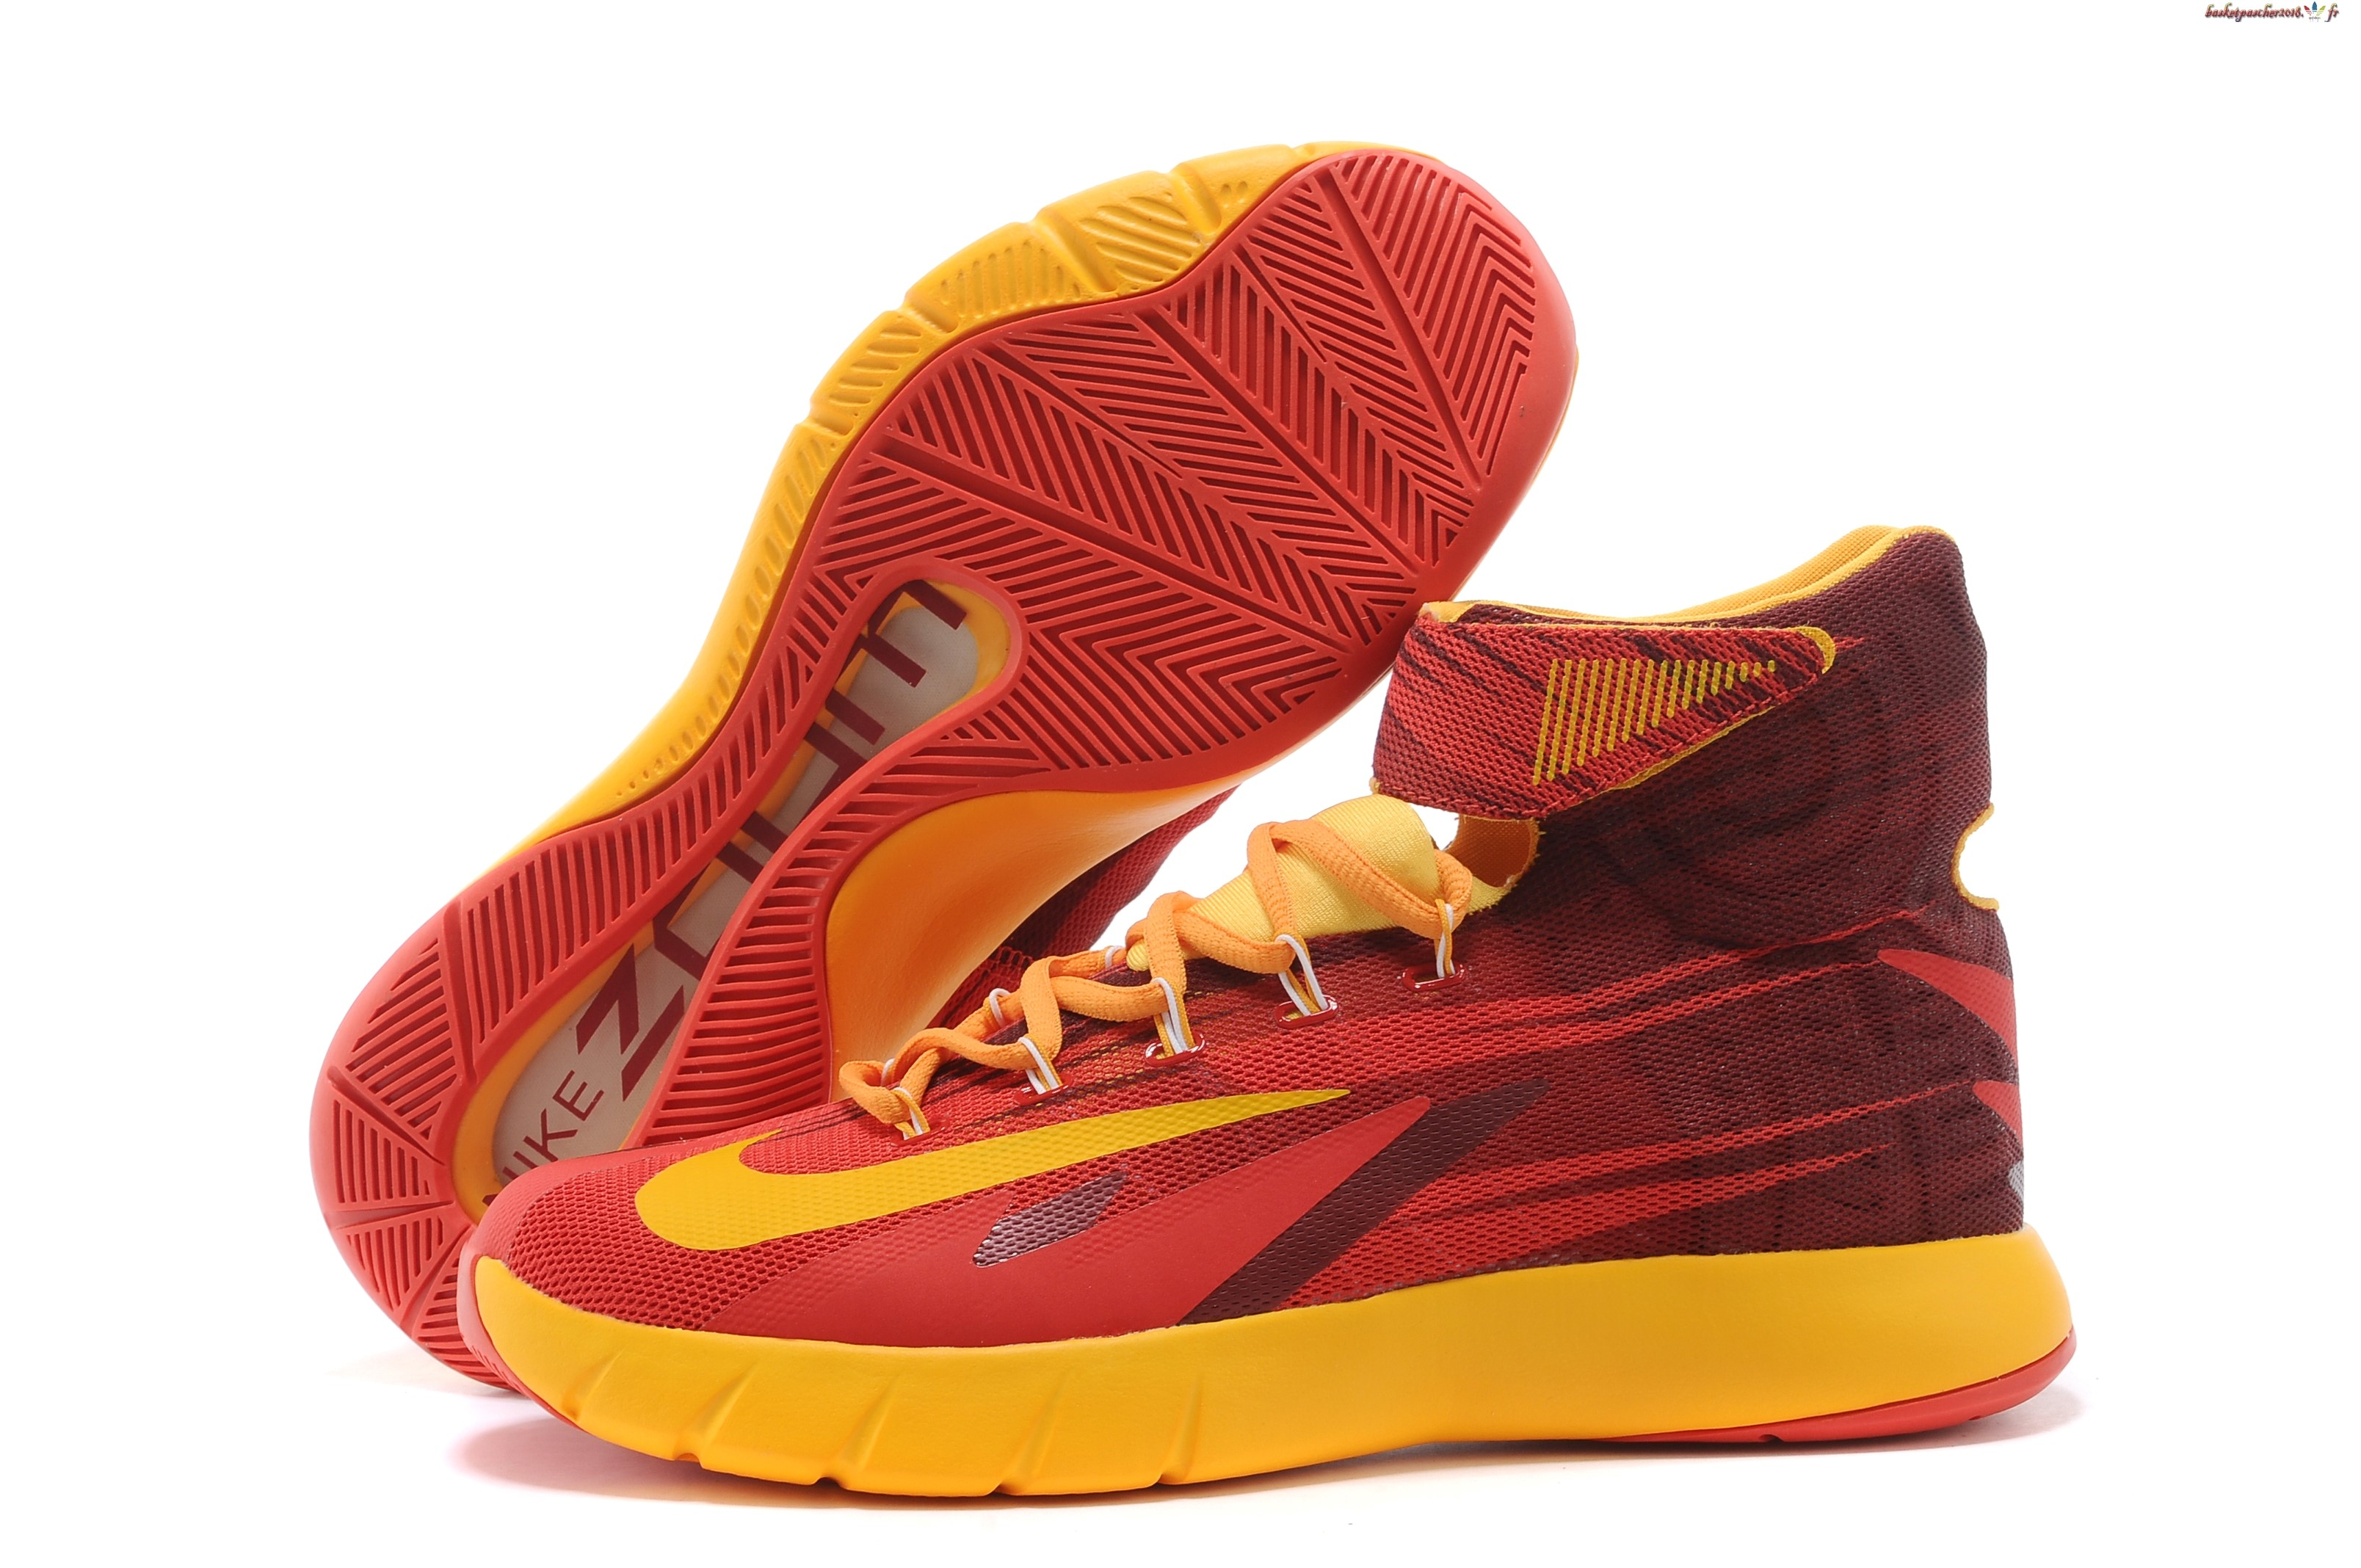 Vente Chaude Chaussures De Basketball Homme Nike Zoom Hyperrev Kyrie Irving Rouge Jaune Pas Cher